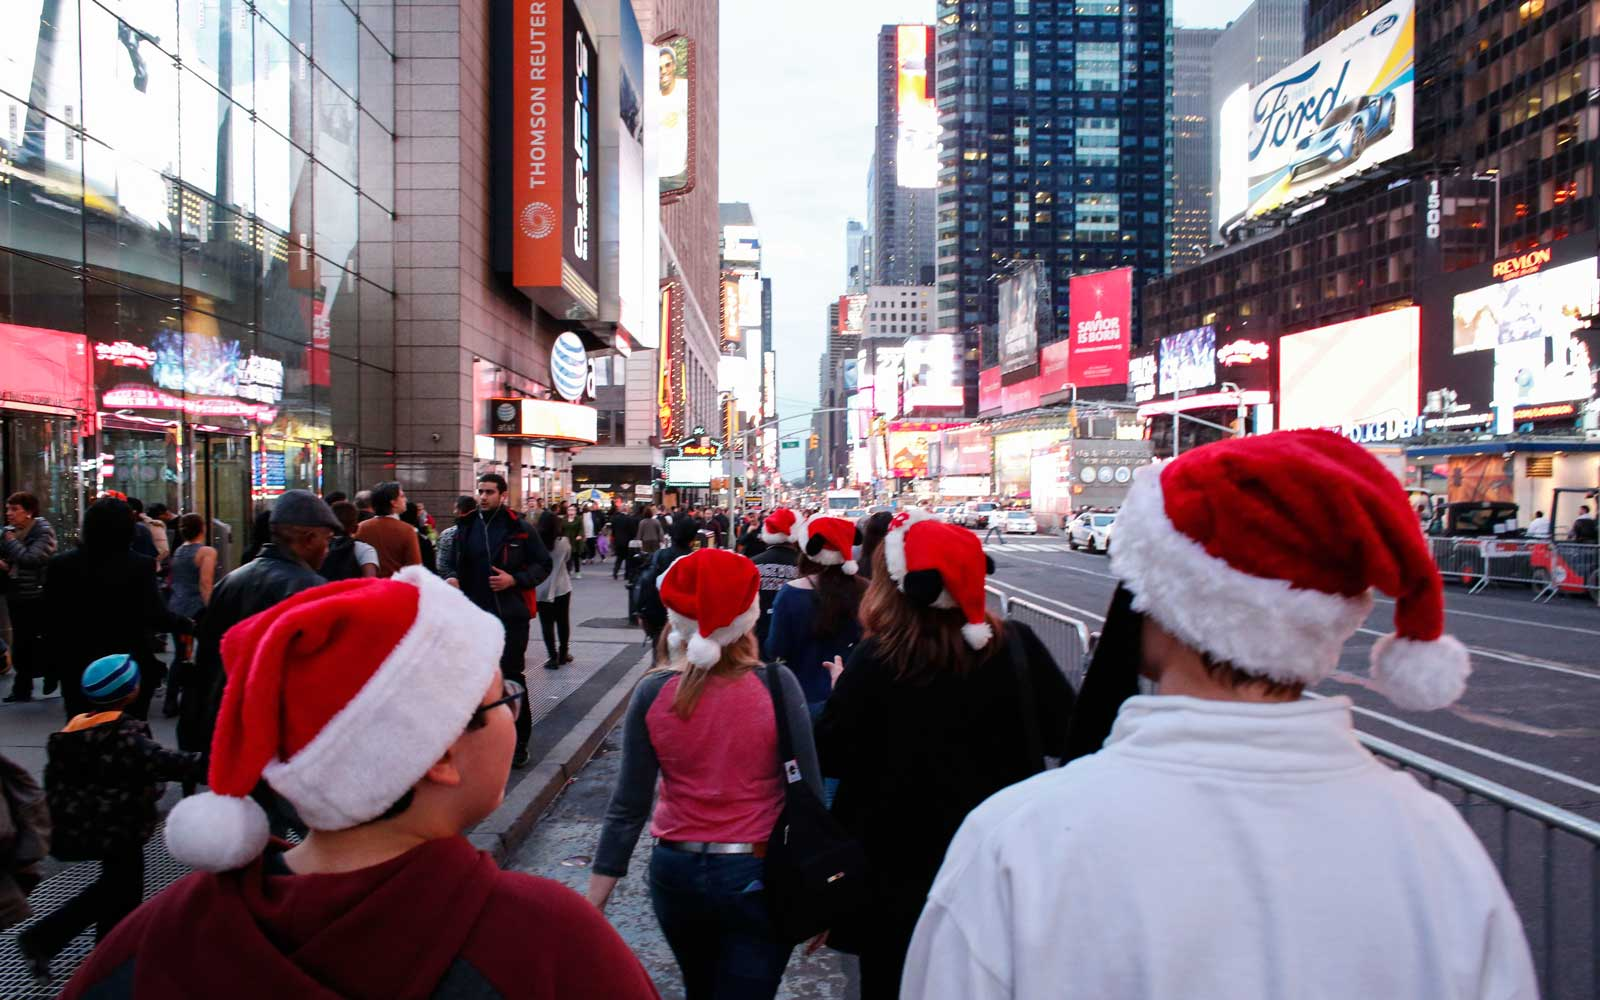 Times Square during Christmastime